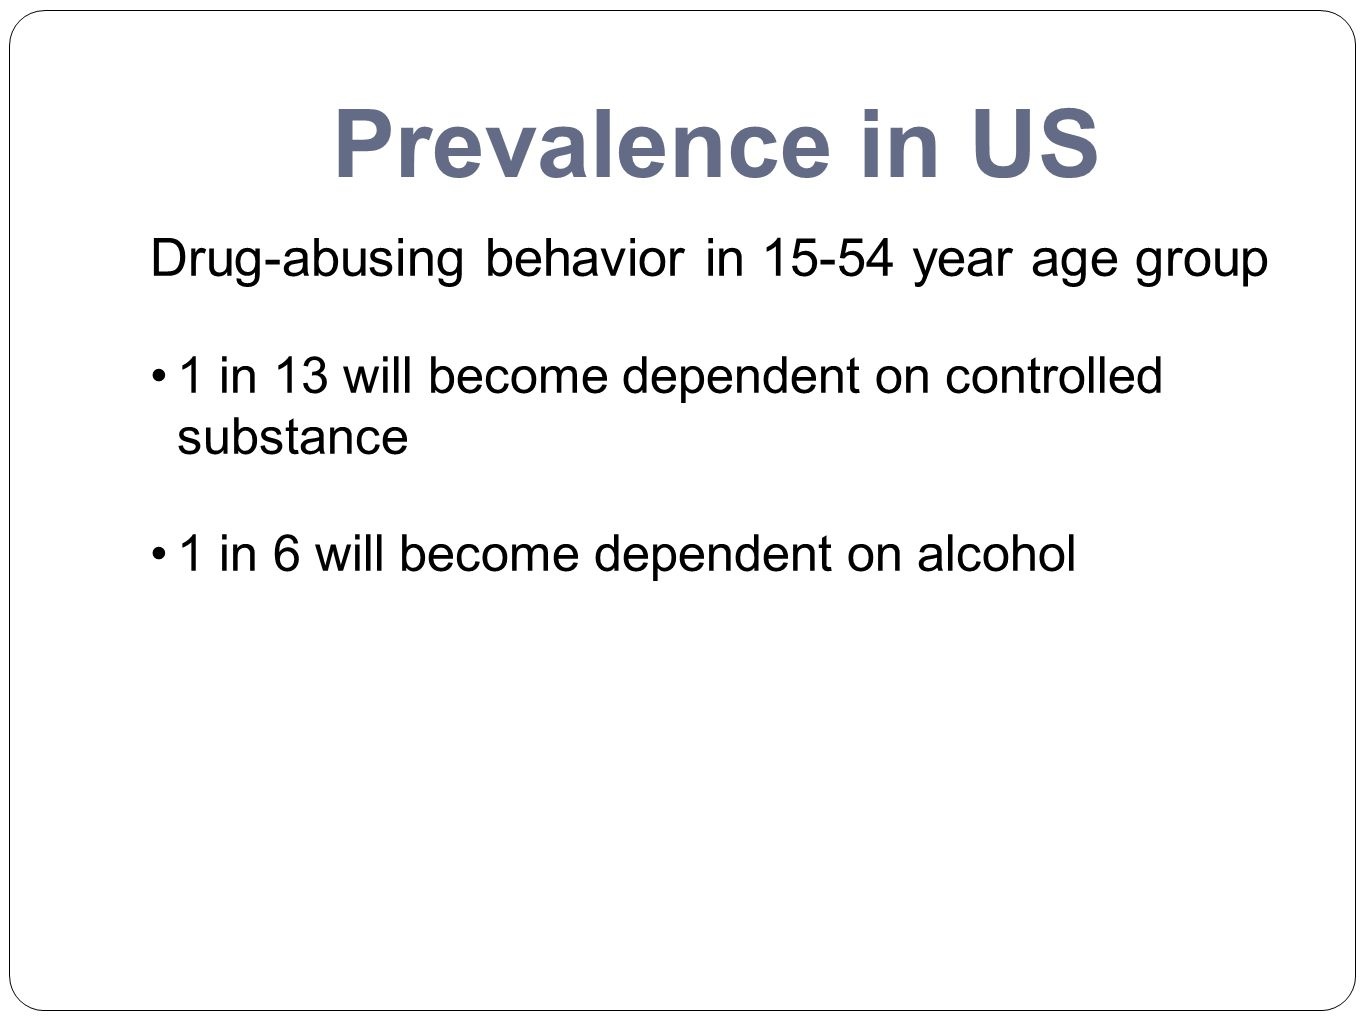 Prevalence in US Drug-abusing behavior in 15-54 year age group